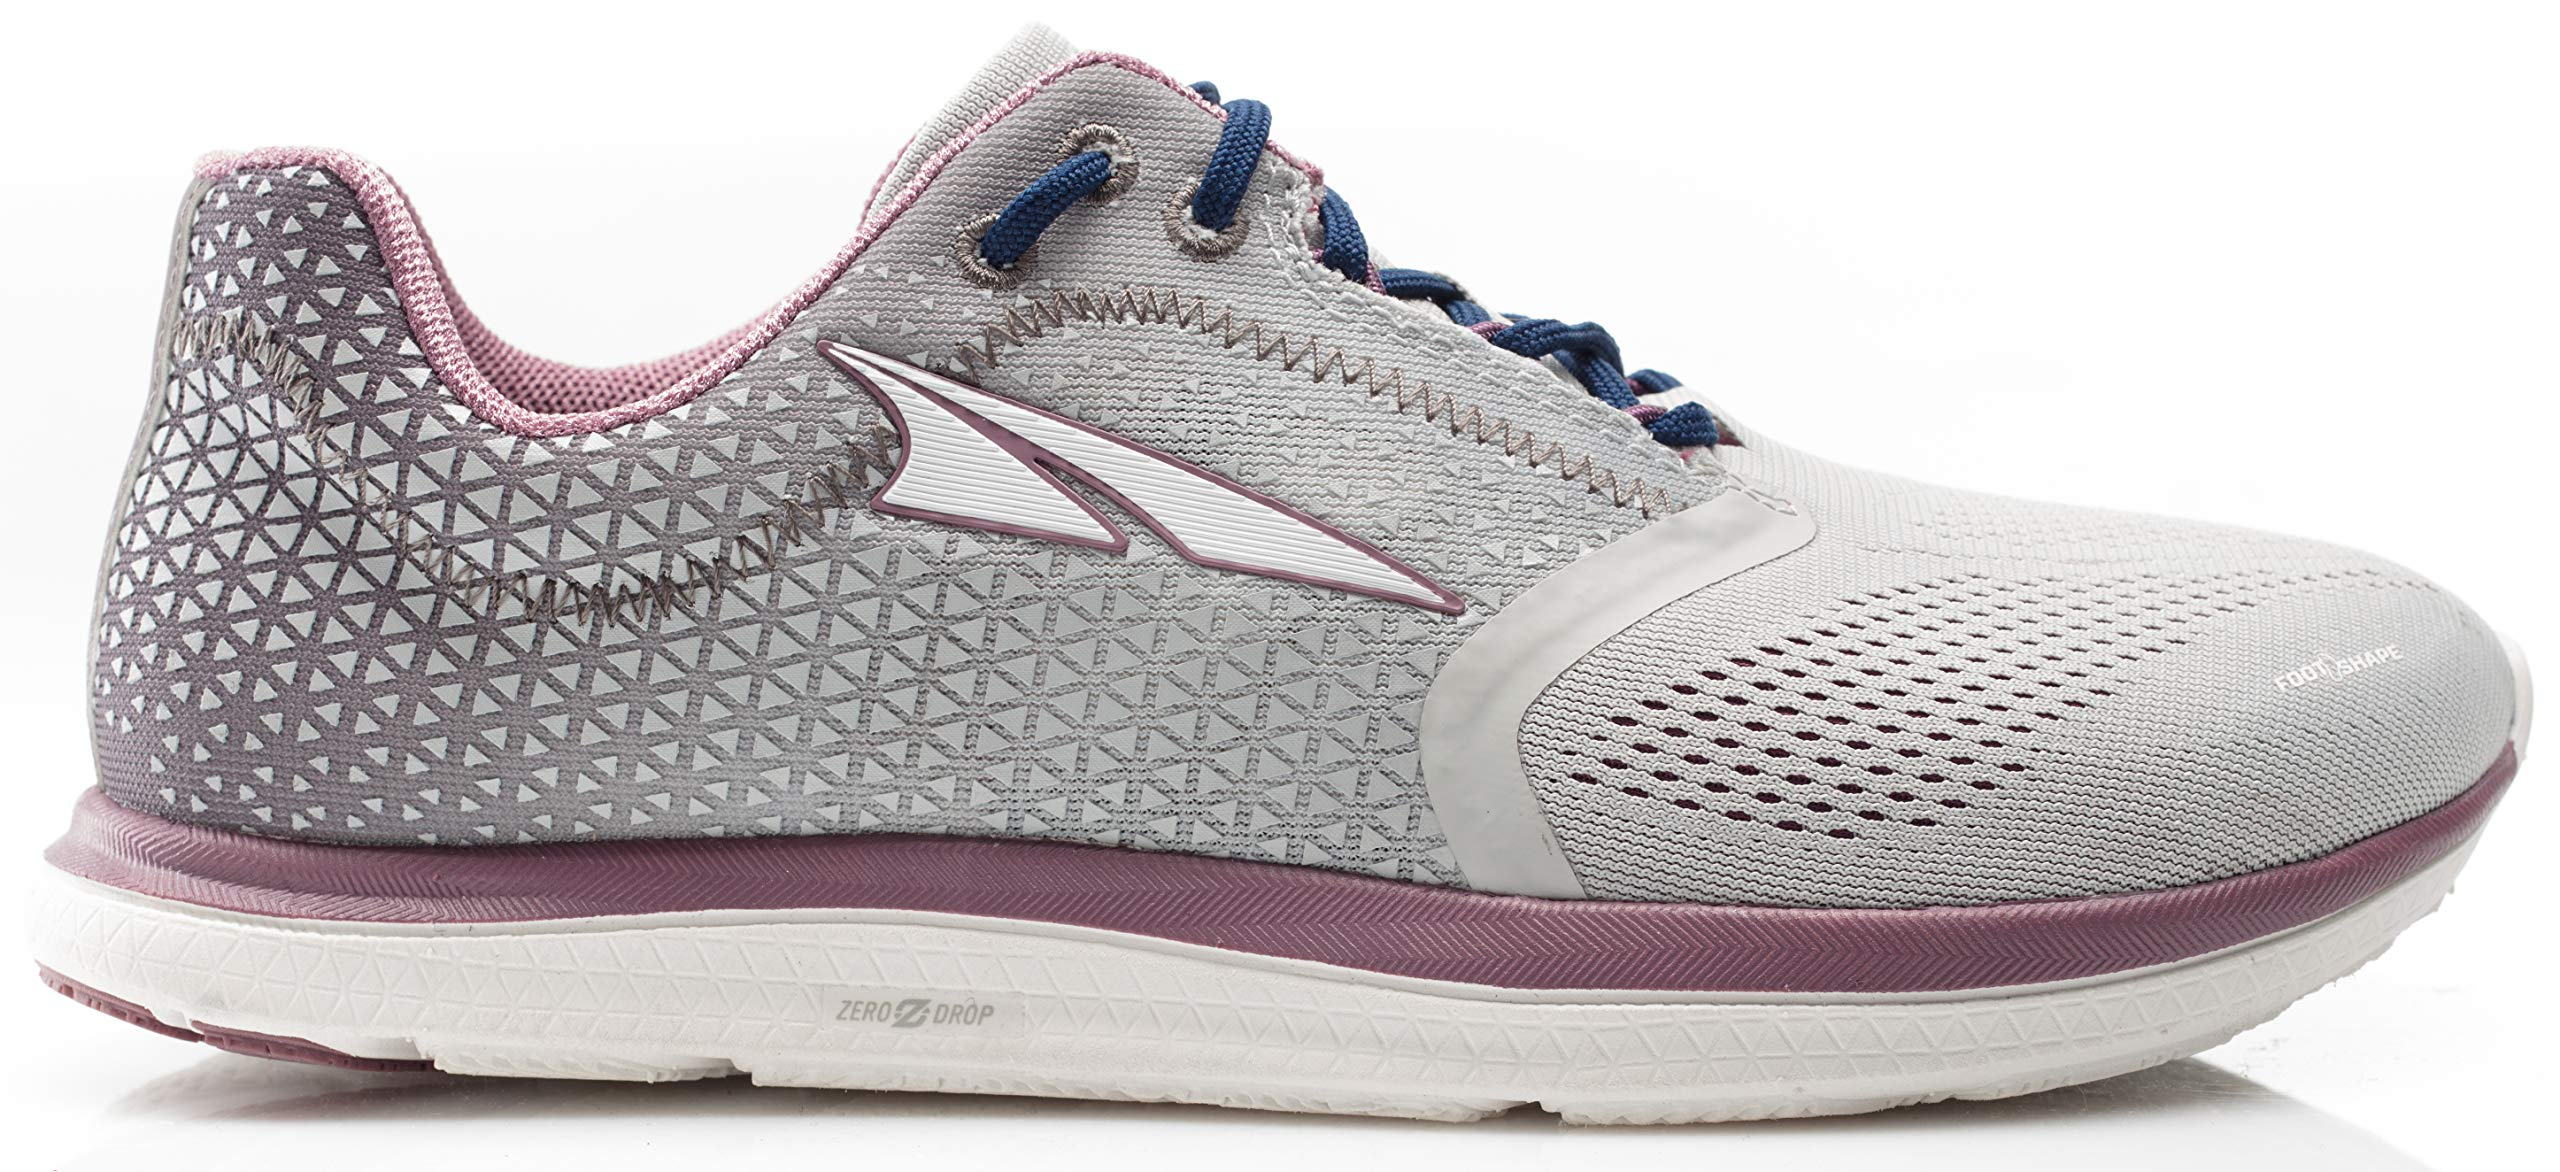 Altra AFW1836P Women's Solstice Road Running Shoe, Gray/Plum - 6 M US by Altra (Image #1)